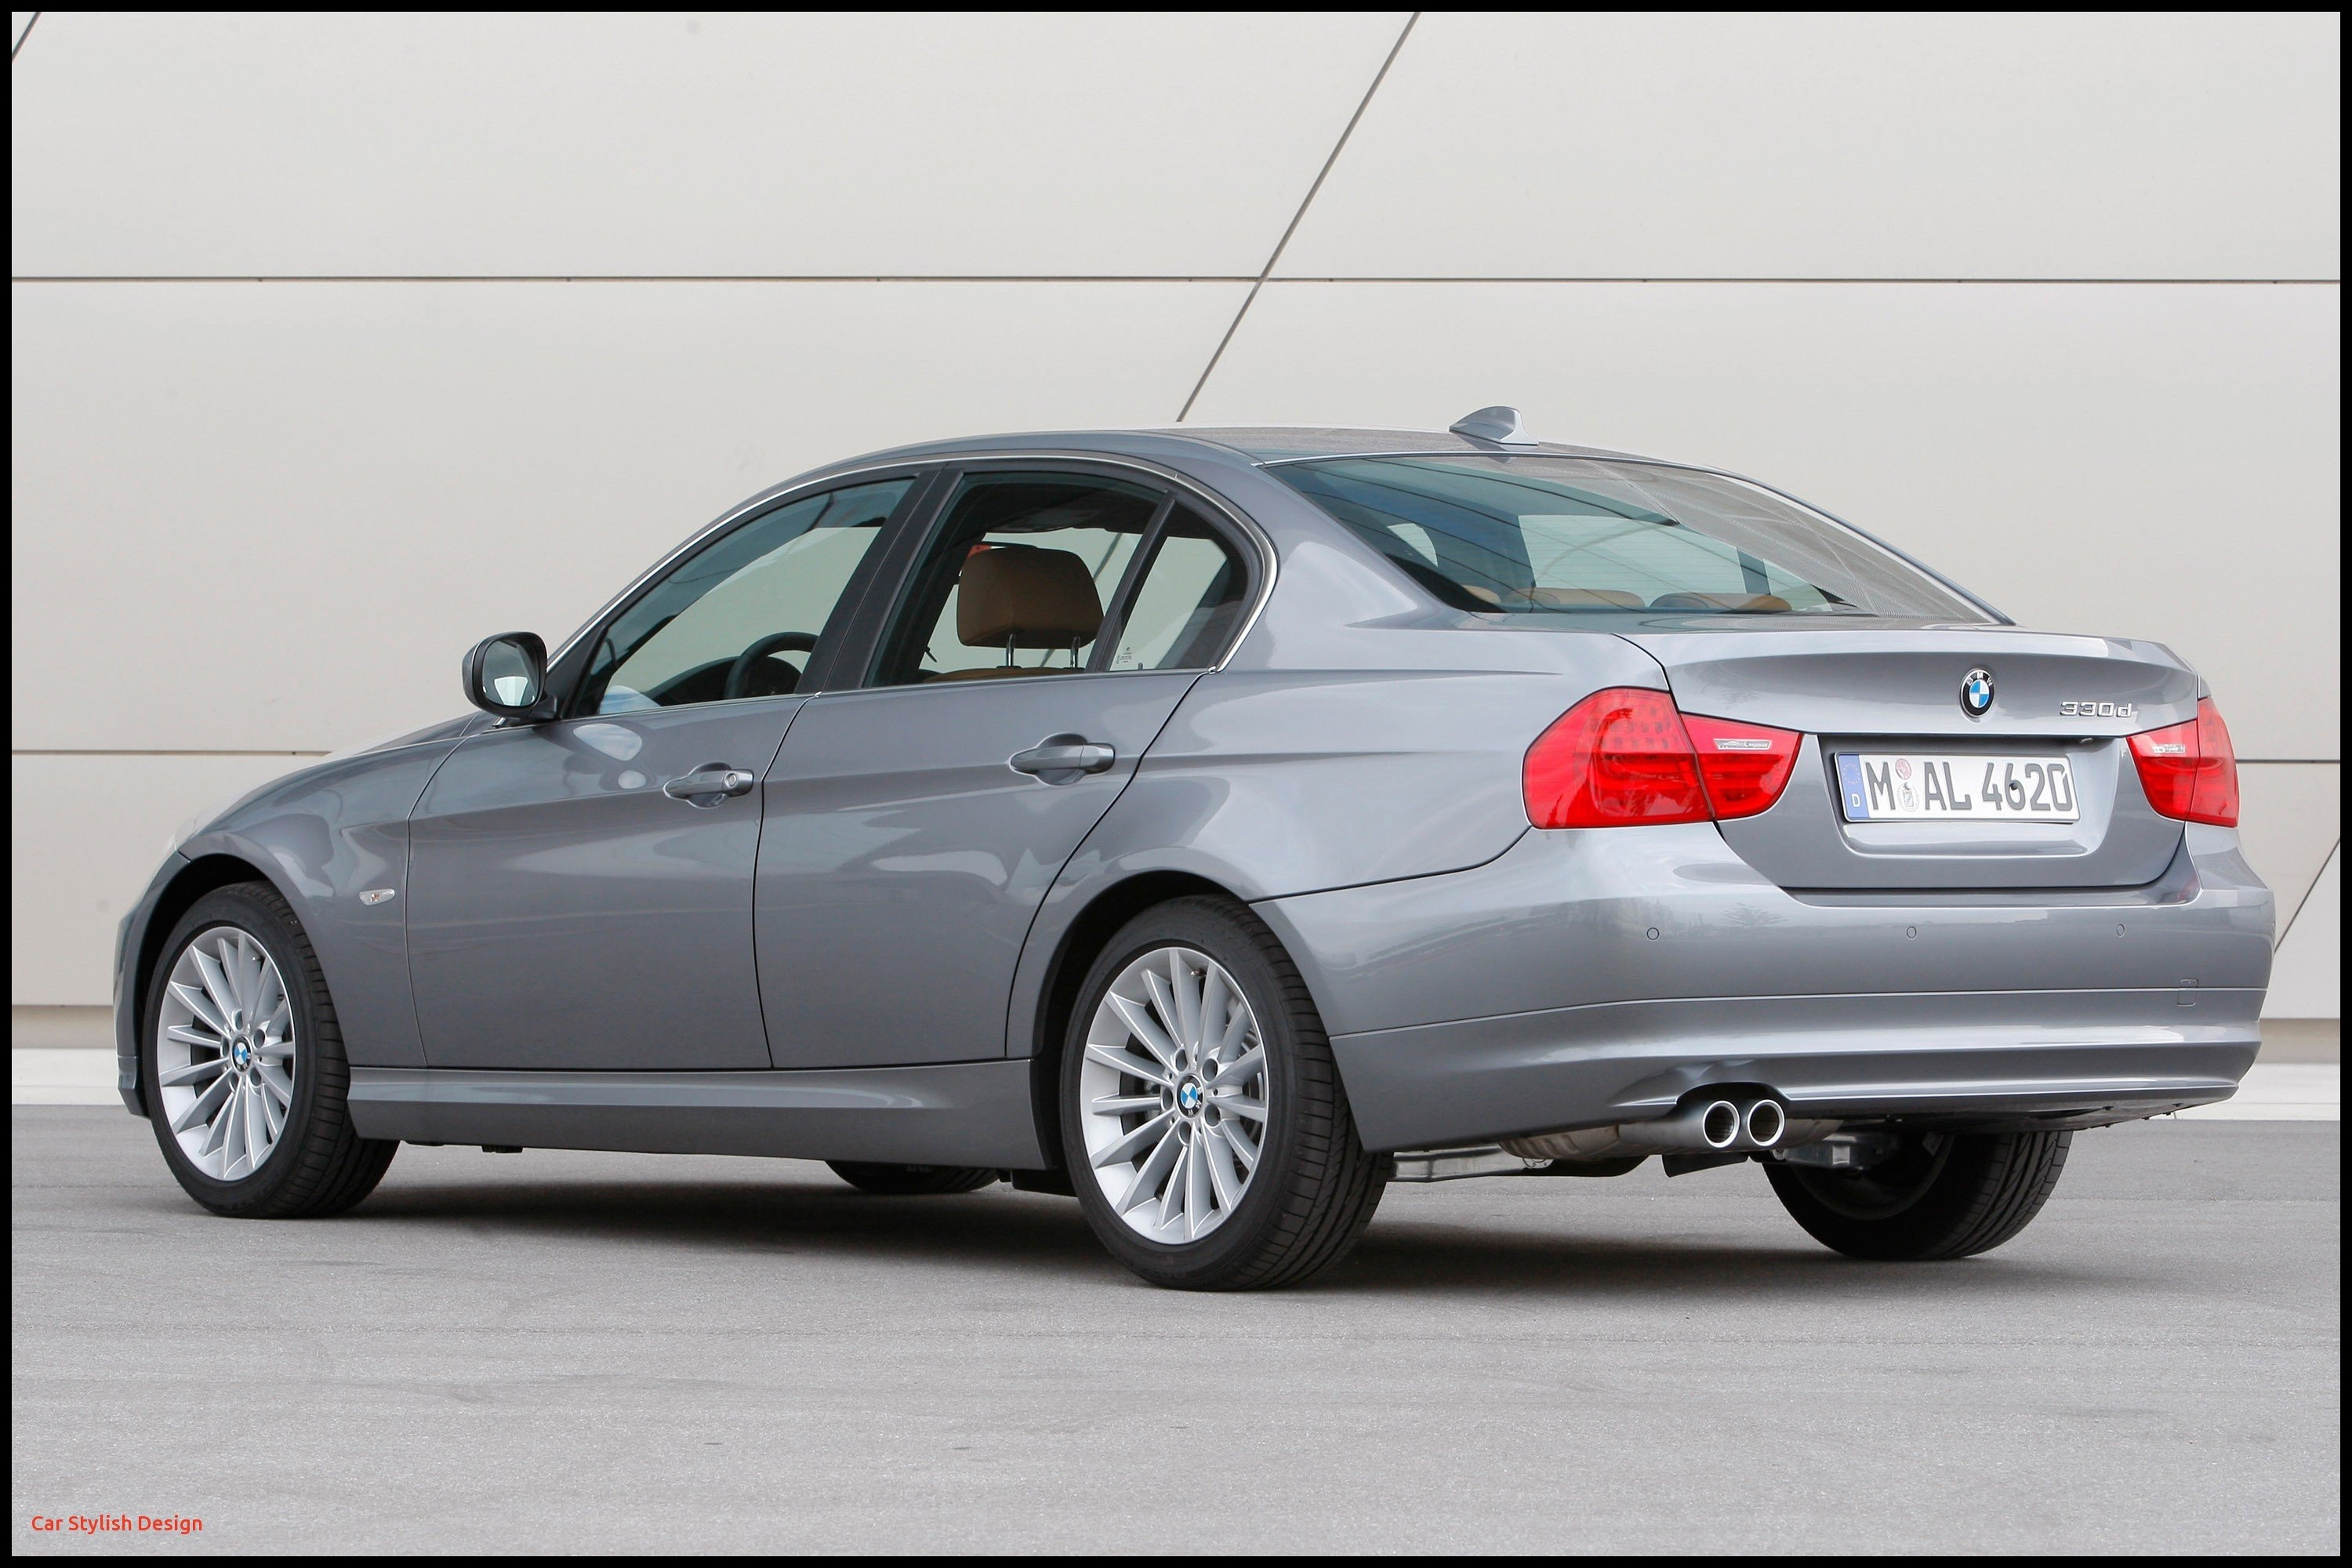 Bmw 3 Series 335 Inspirational Bmw 335 Lovely 2011 Bmw 3 Series Brochure Awesome Superchips Boosted